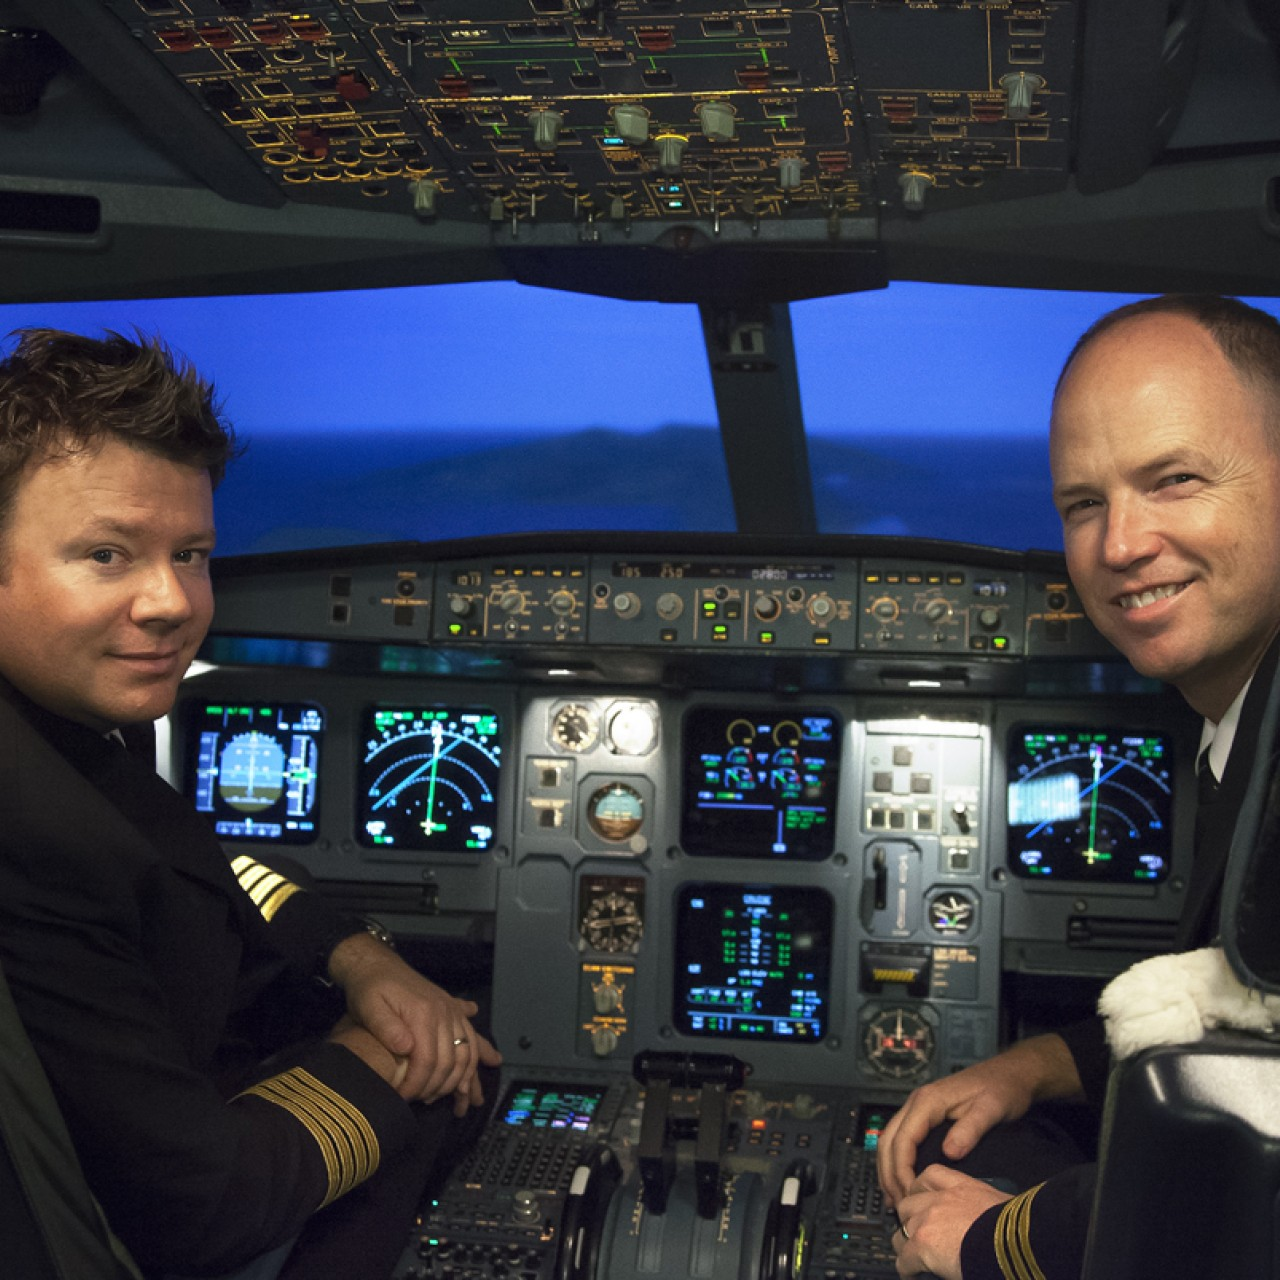 Pilots reveal death-defying ordeal as engines failed on